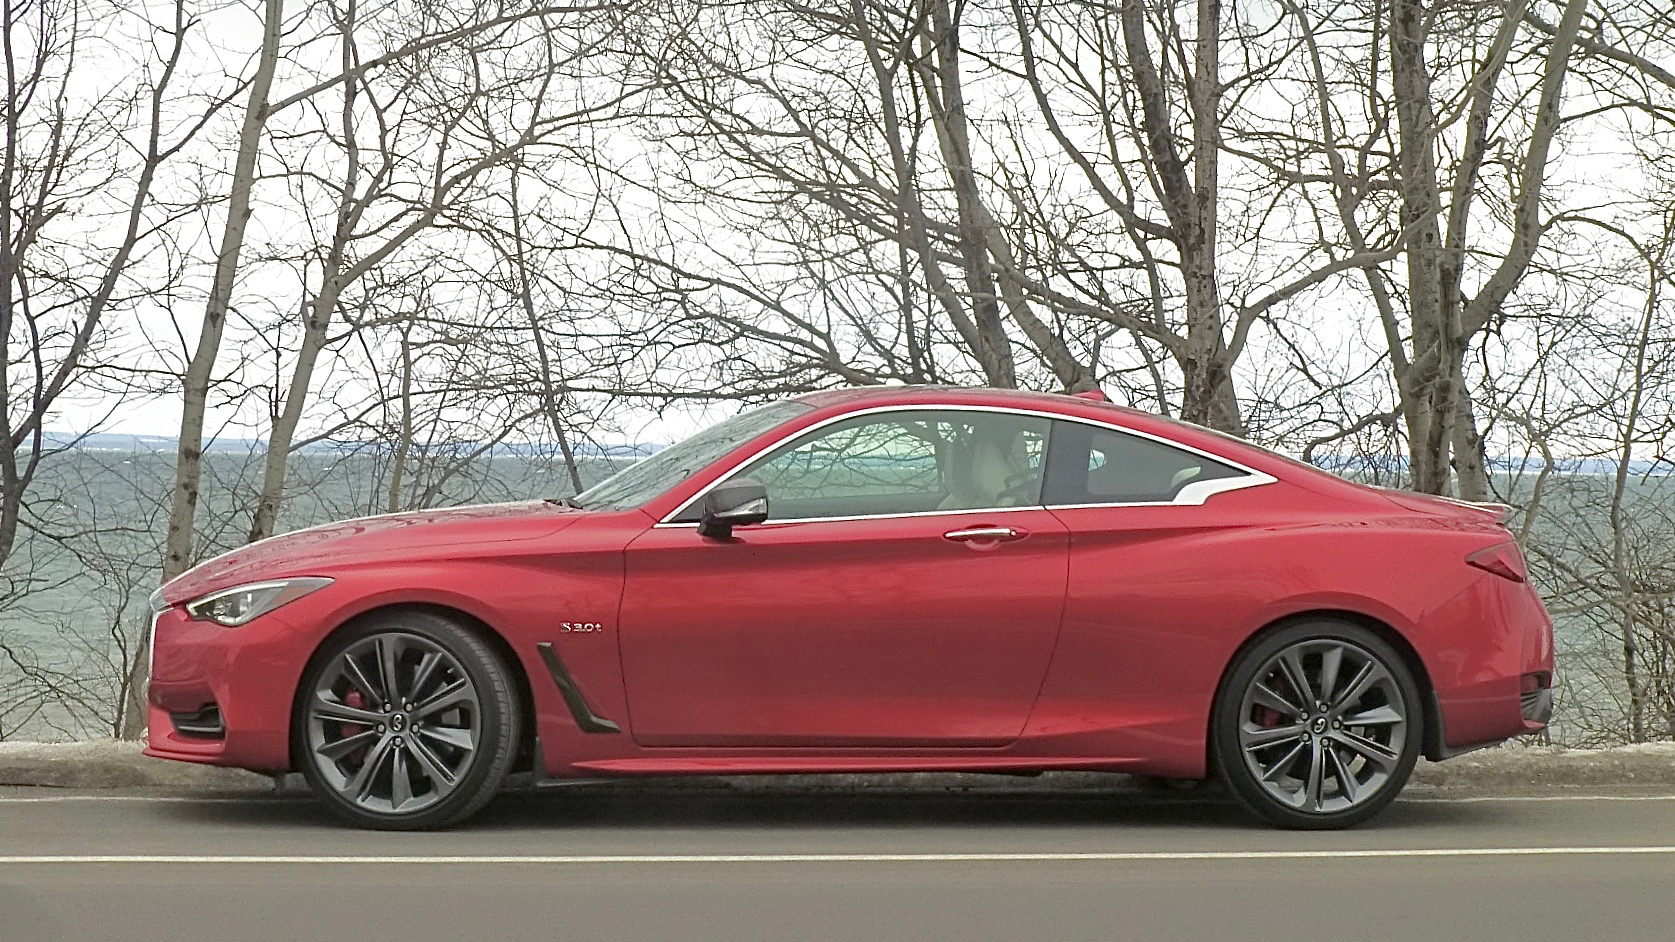 Sweeping fastback lines imply 2-seater, but Q60 has fair room in the rear, too.